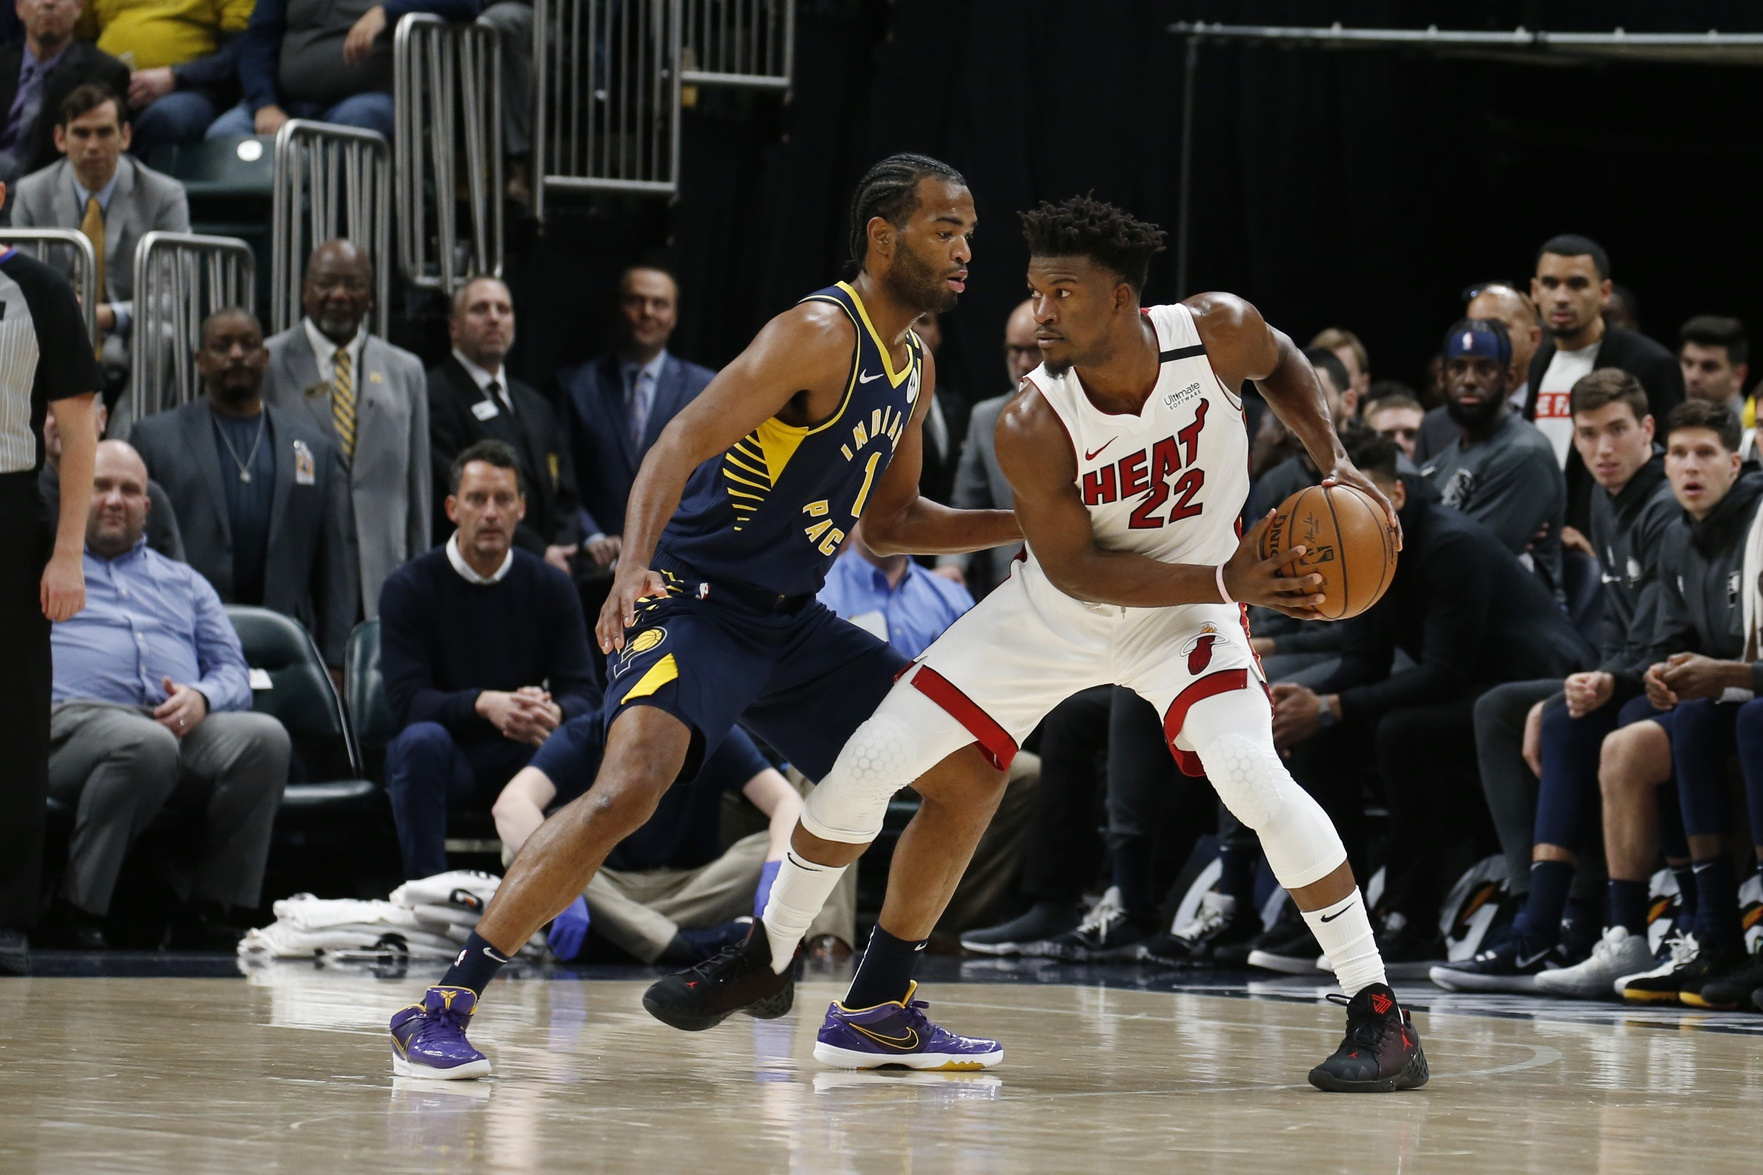 Heat's Jimmy Butler fined 35K for role in altercation with Pacers' T.J. Warren